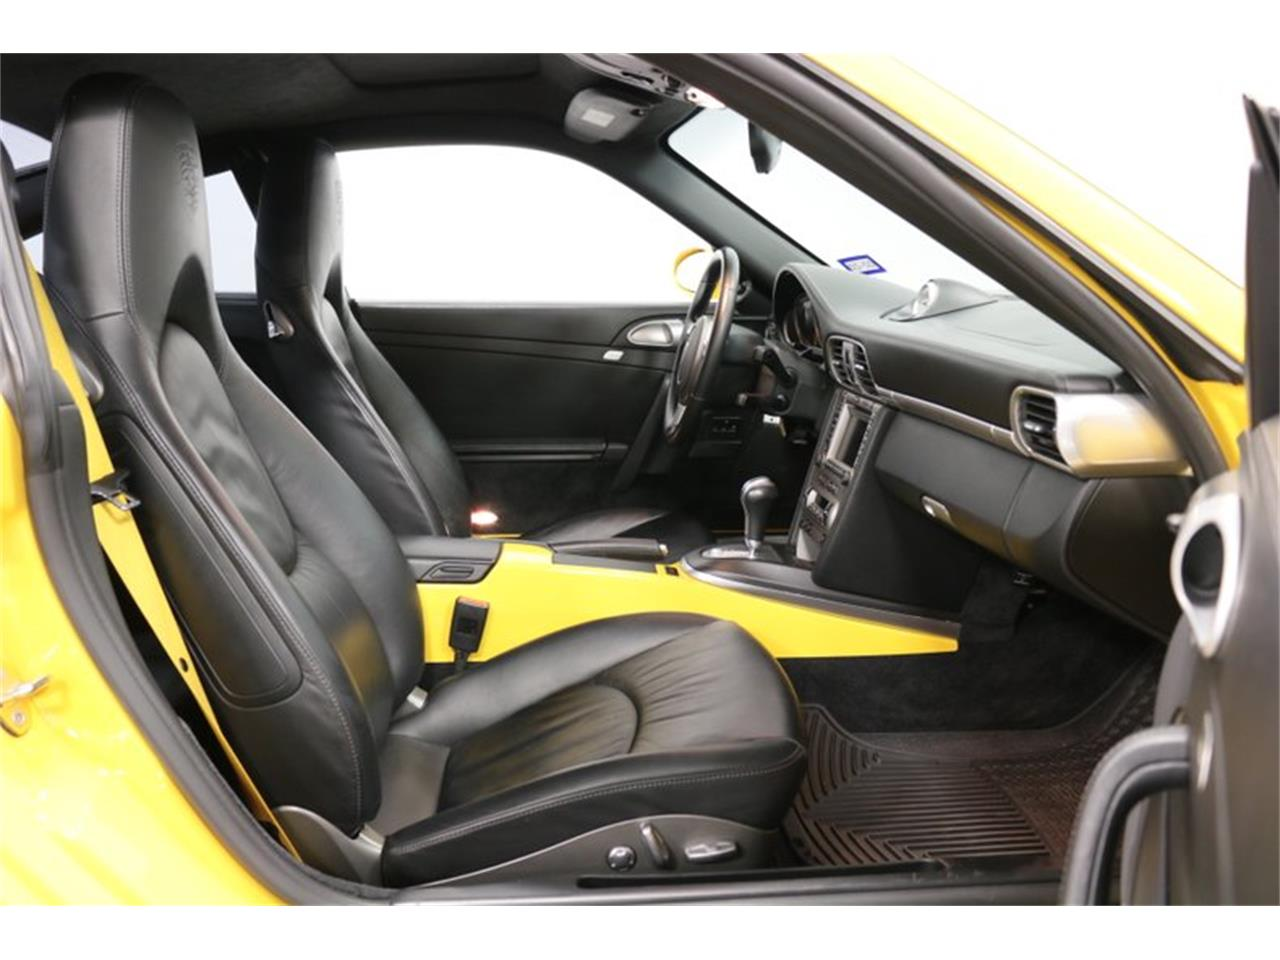 2007 Porsche 911 for sale in Ft Worth, TX – photo 63